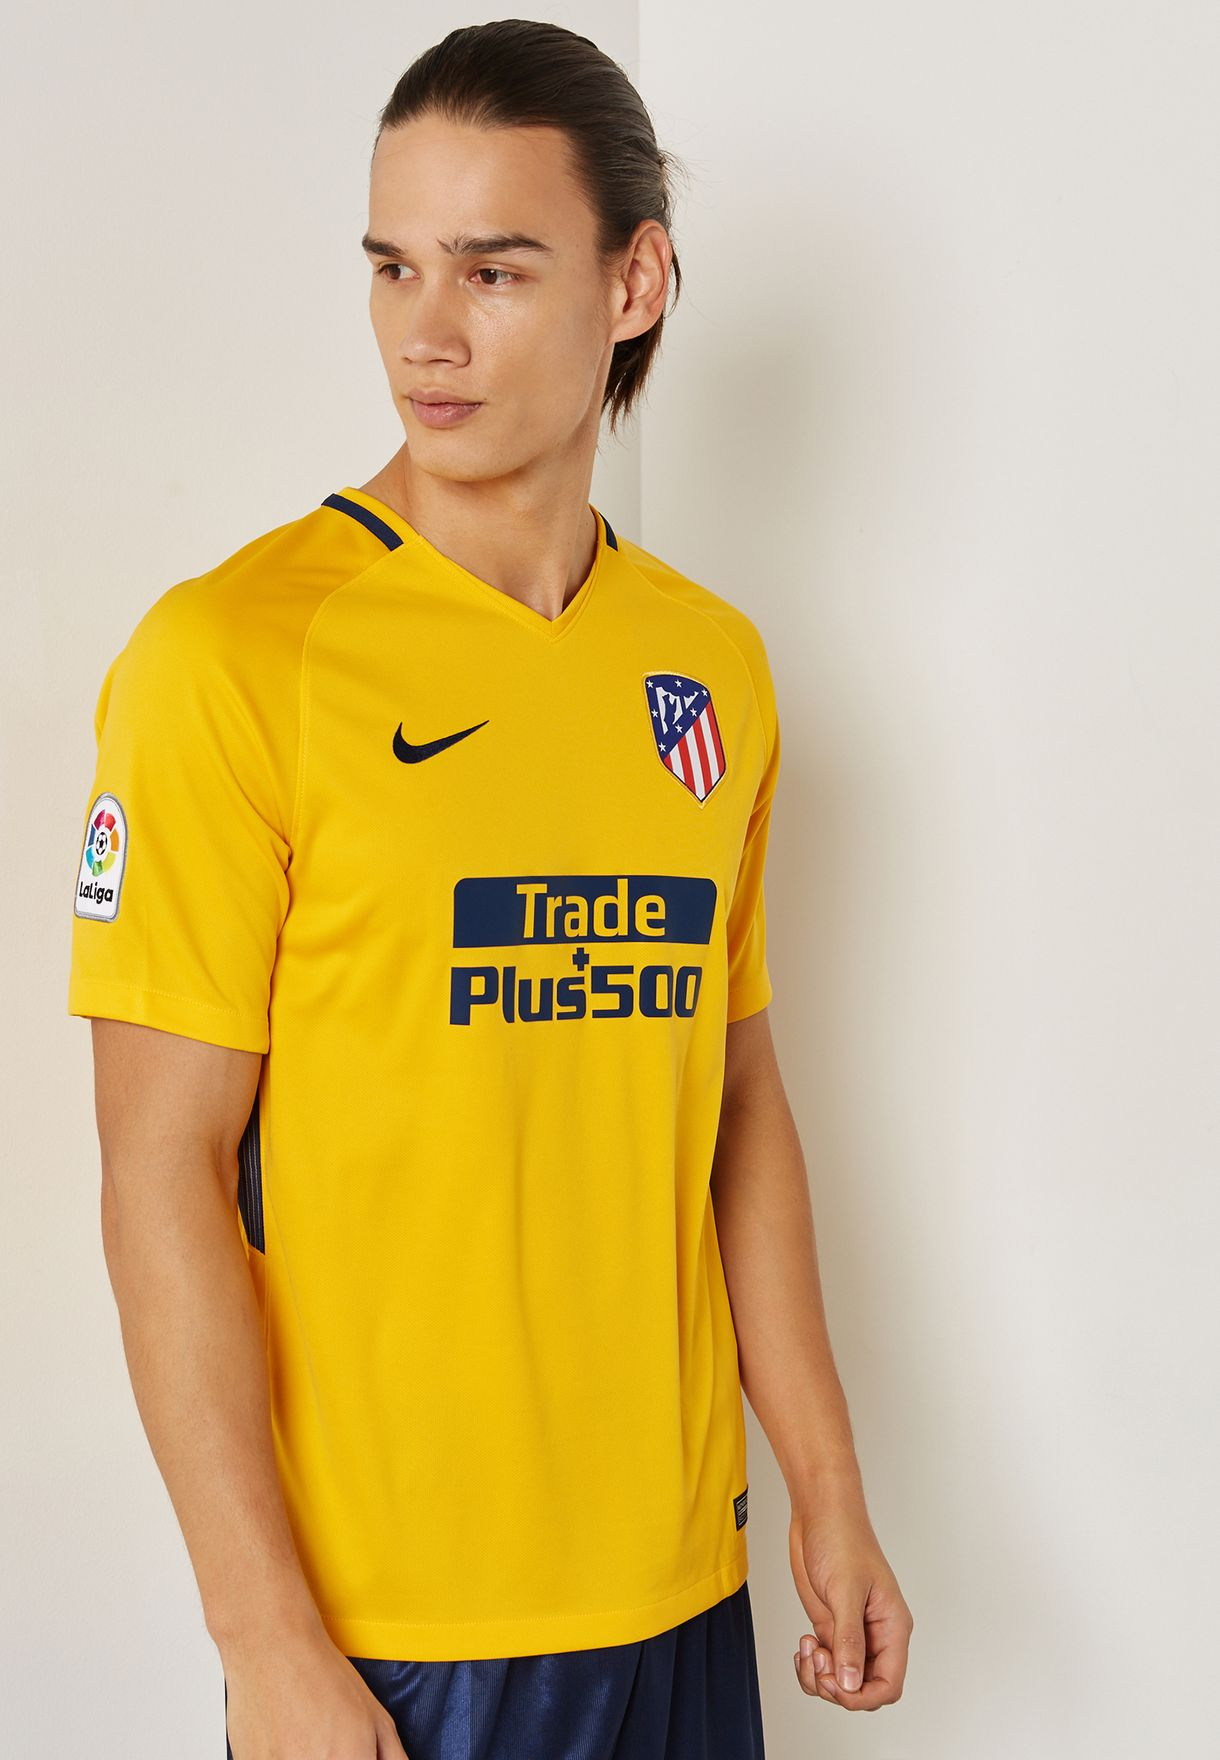 33c176b1 Shop Nike yellow Atletico Madrid 17/18 Away Jersey 847290-740 for ...